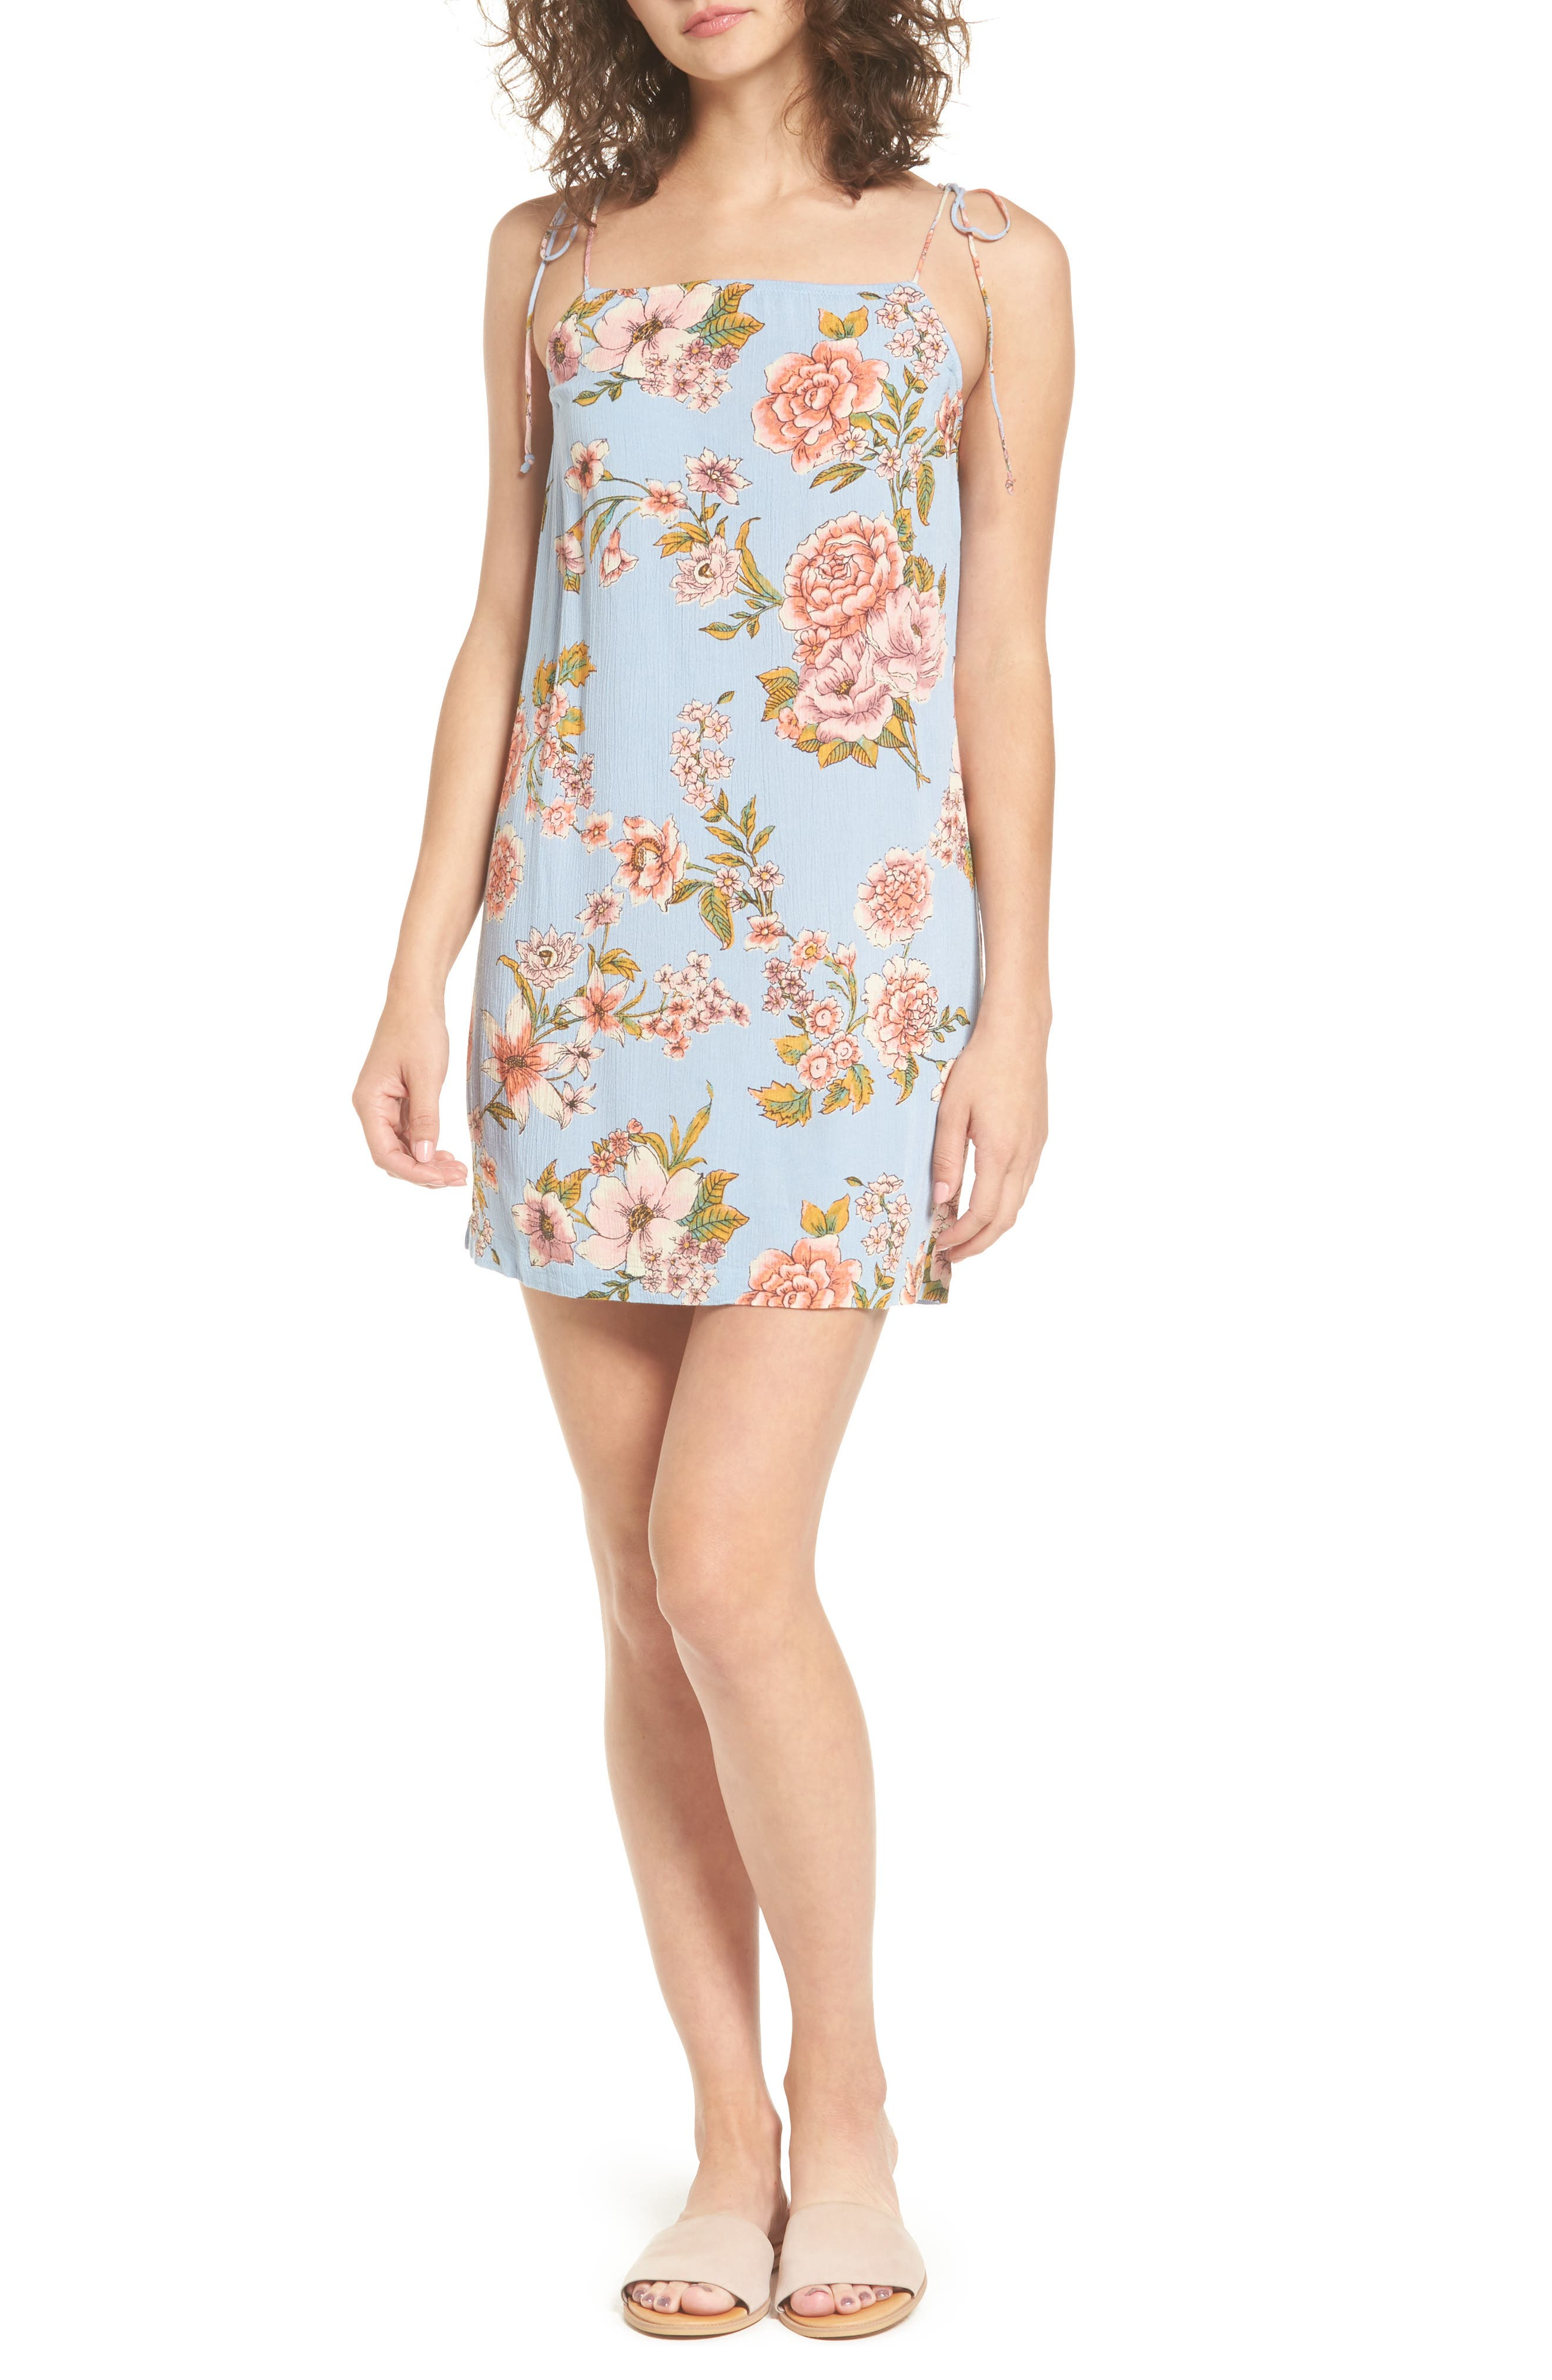 Night Out Floral Camisole Dress,                             Main thumbnail 1, color,                             488